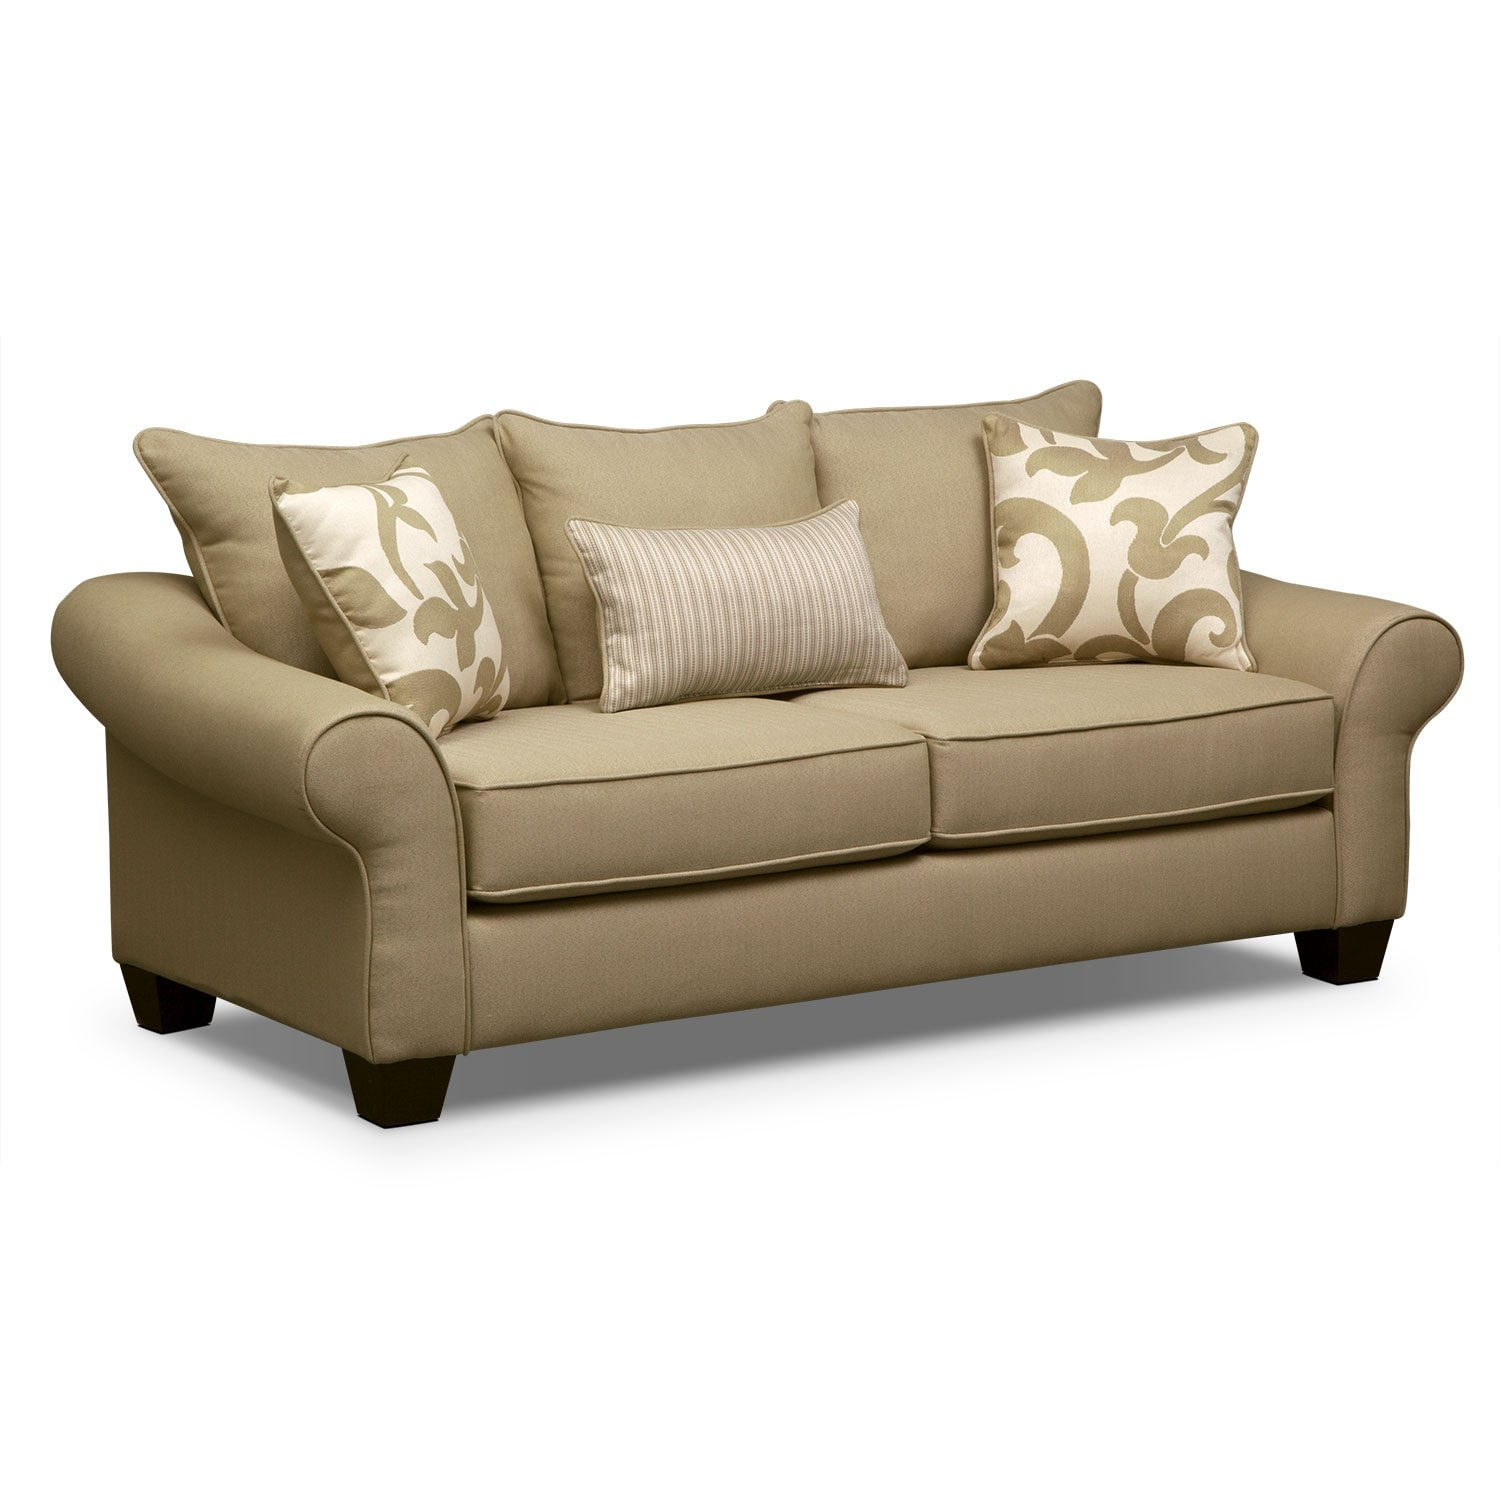 Colette Sofa Loveseat and Accent Chair Set Khaki